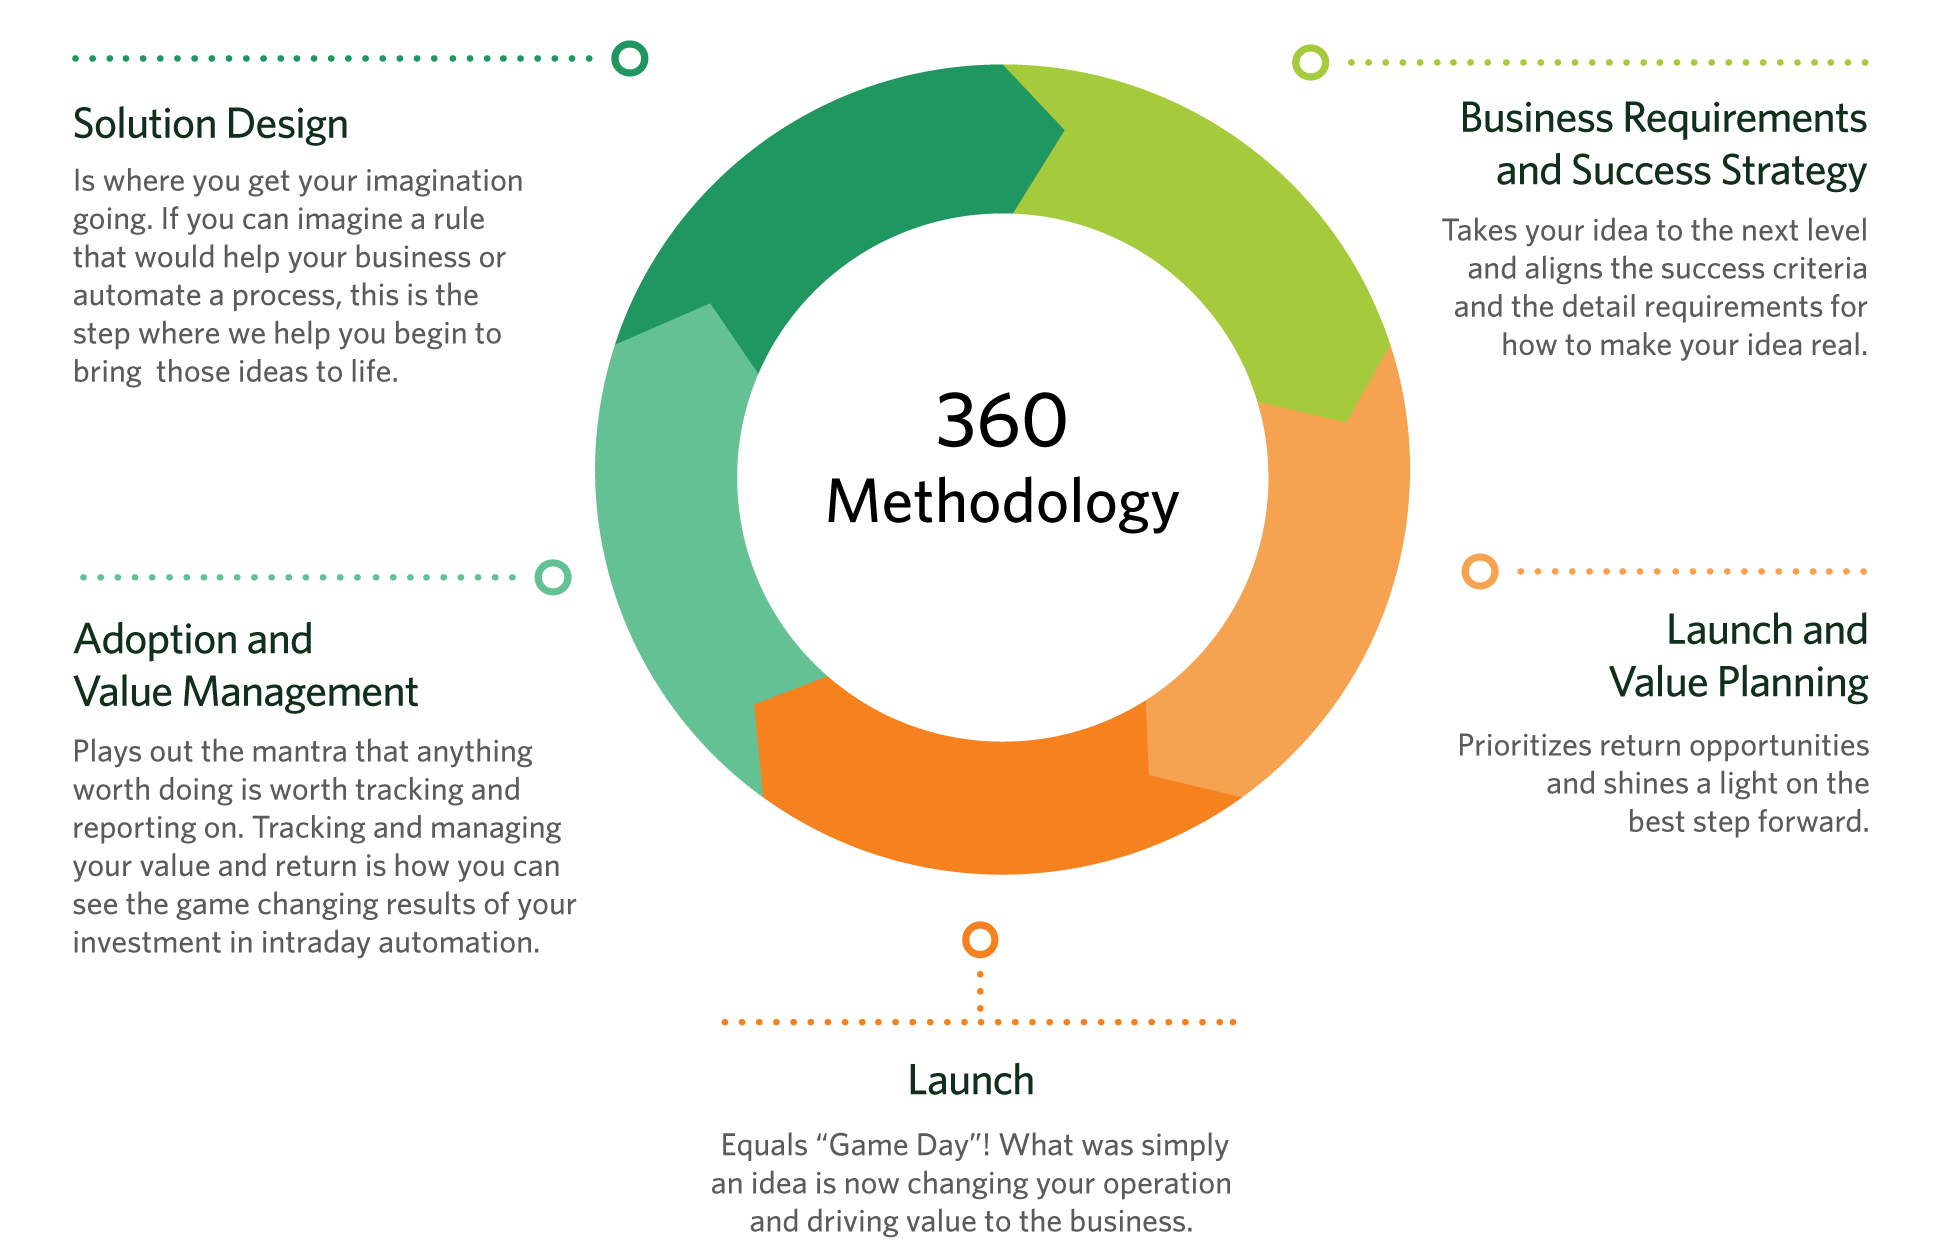 Limitless 360 Methodology chart for solution design, adoption, planning, strategy and the luanch